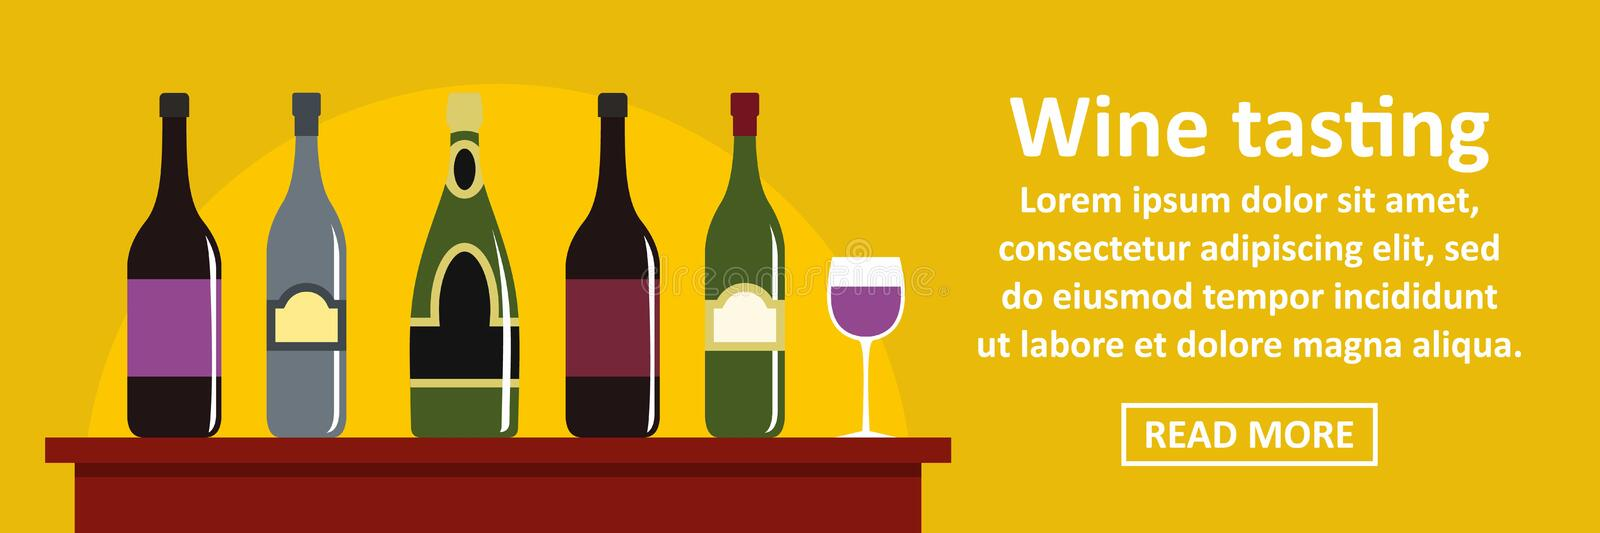 Wine tasting banner horizontal concept vector illustration